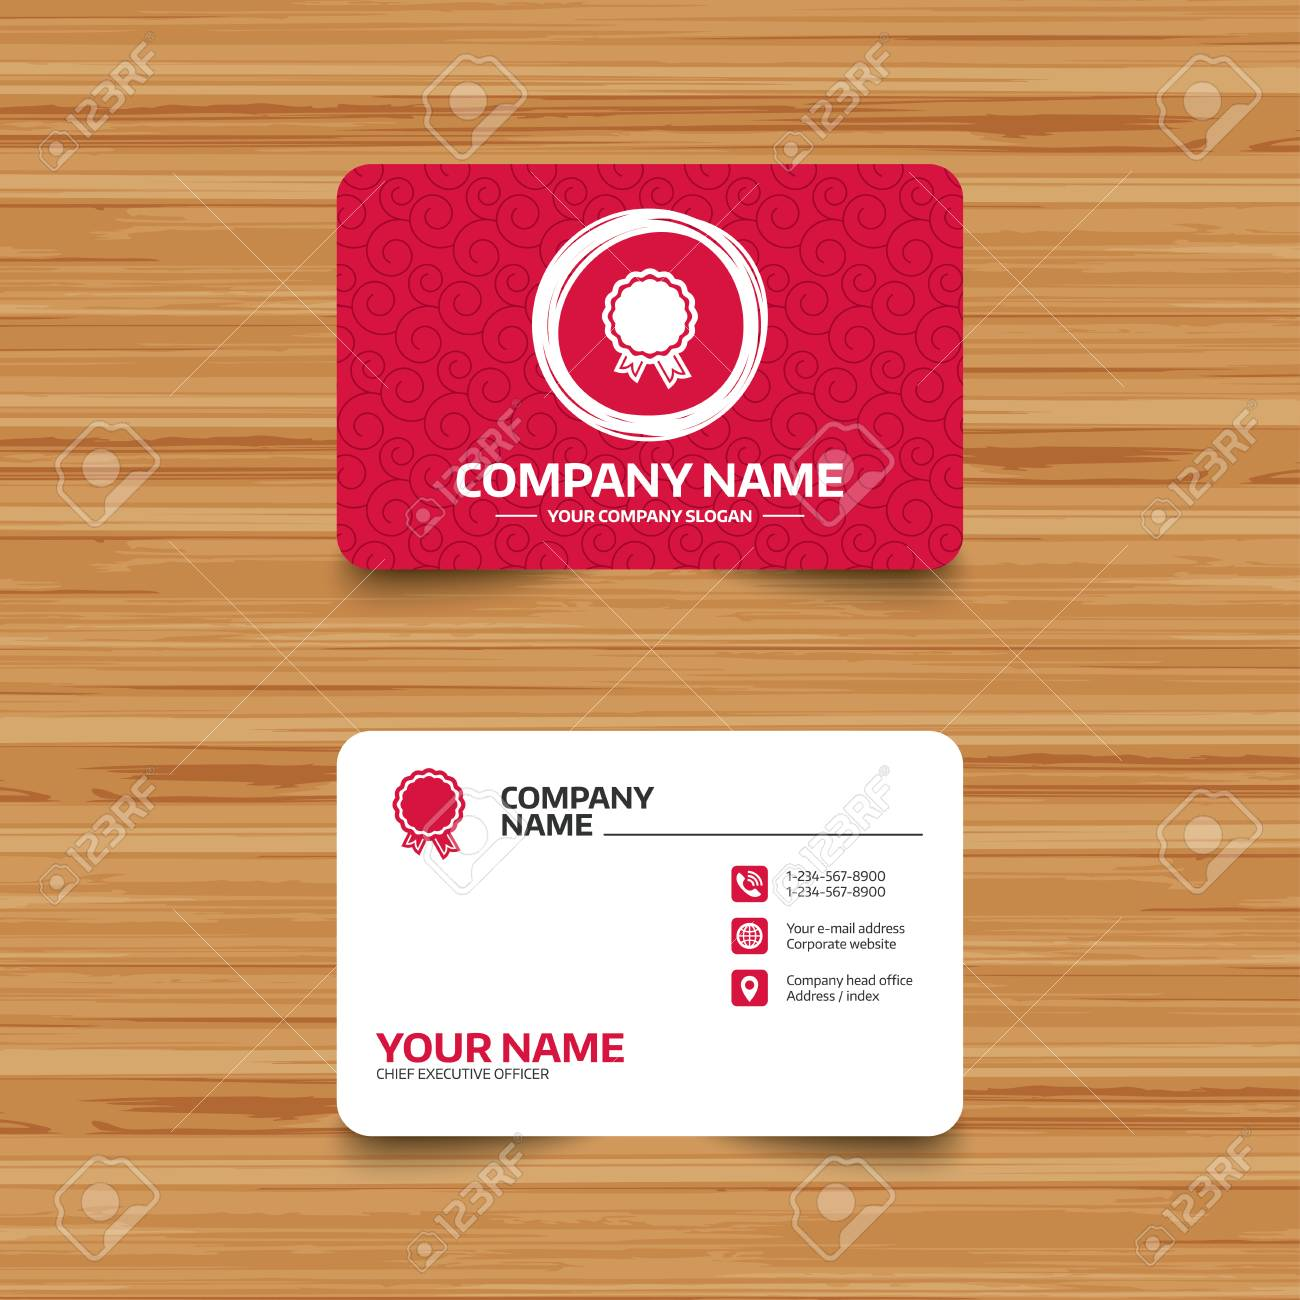 Business card template with texture award icon best guarantee business card template with texture award icon best guarantee symbol winner achievement sign colourmoves